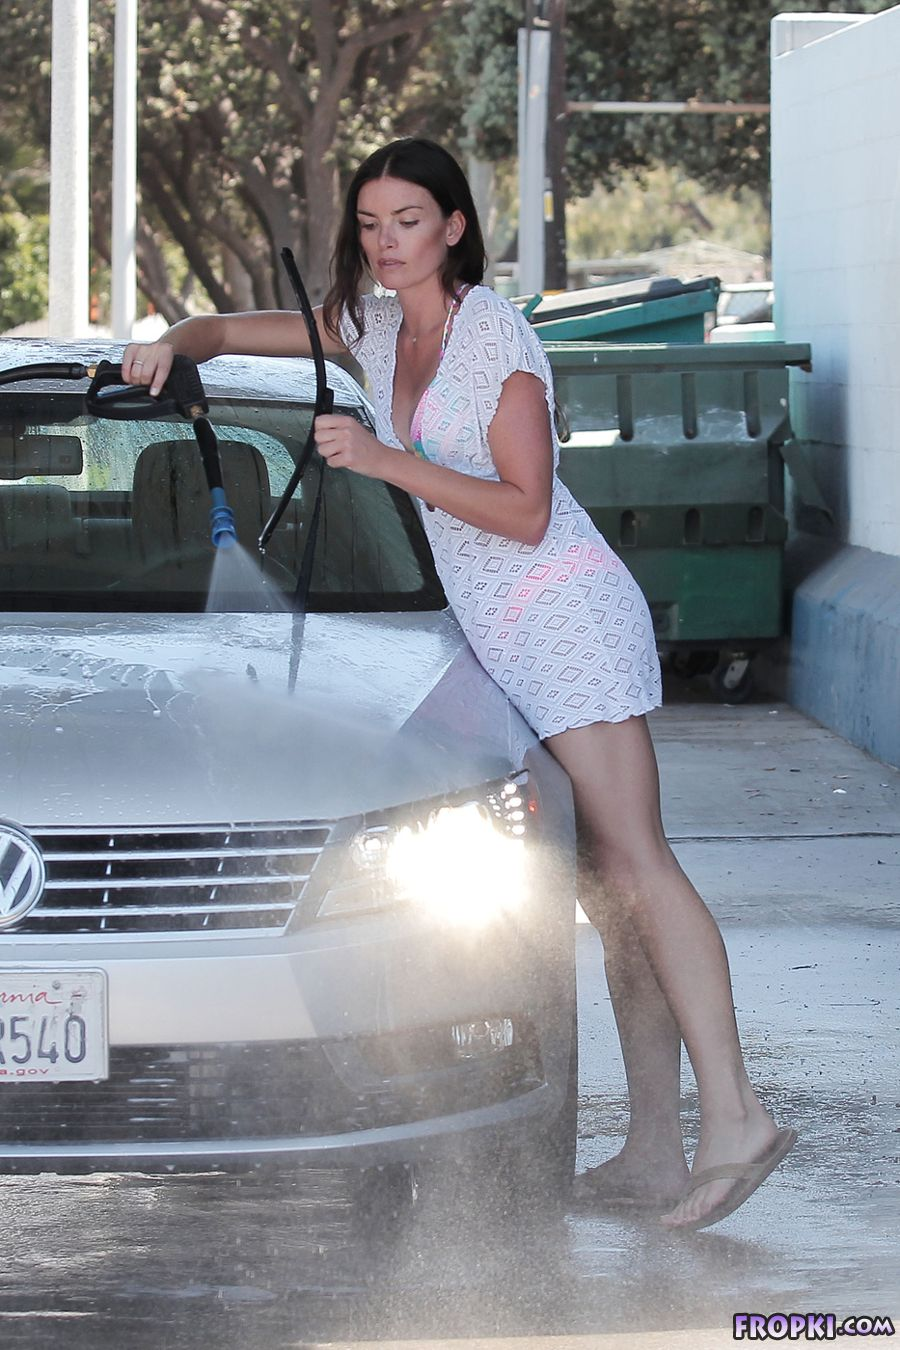 Courtney Robertson - Bikini Car Wash in L.A.